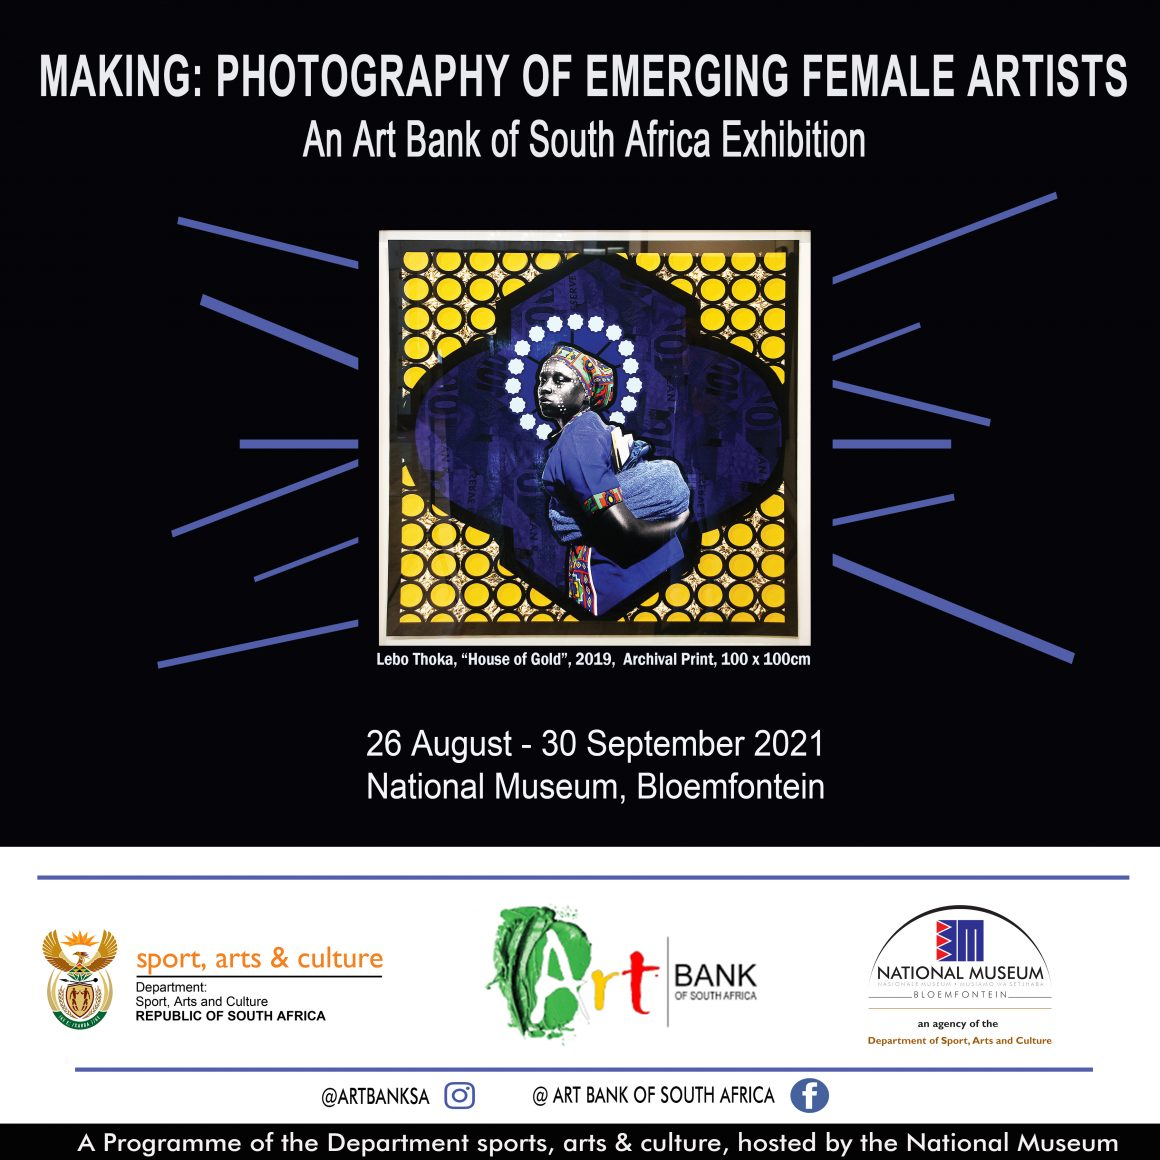 Making: Photography of emerging female artists